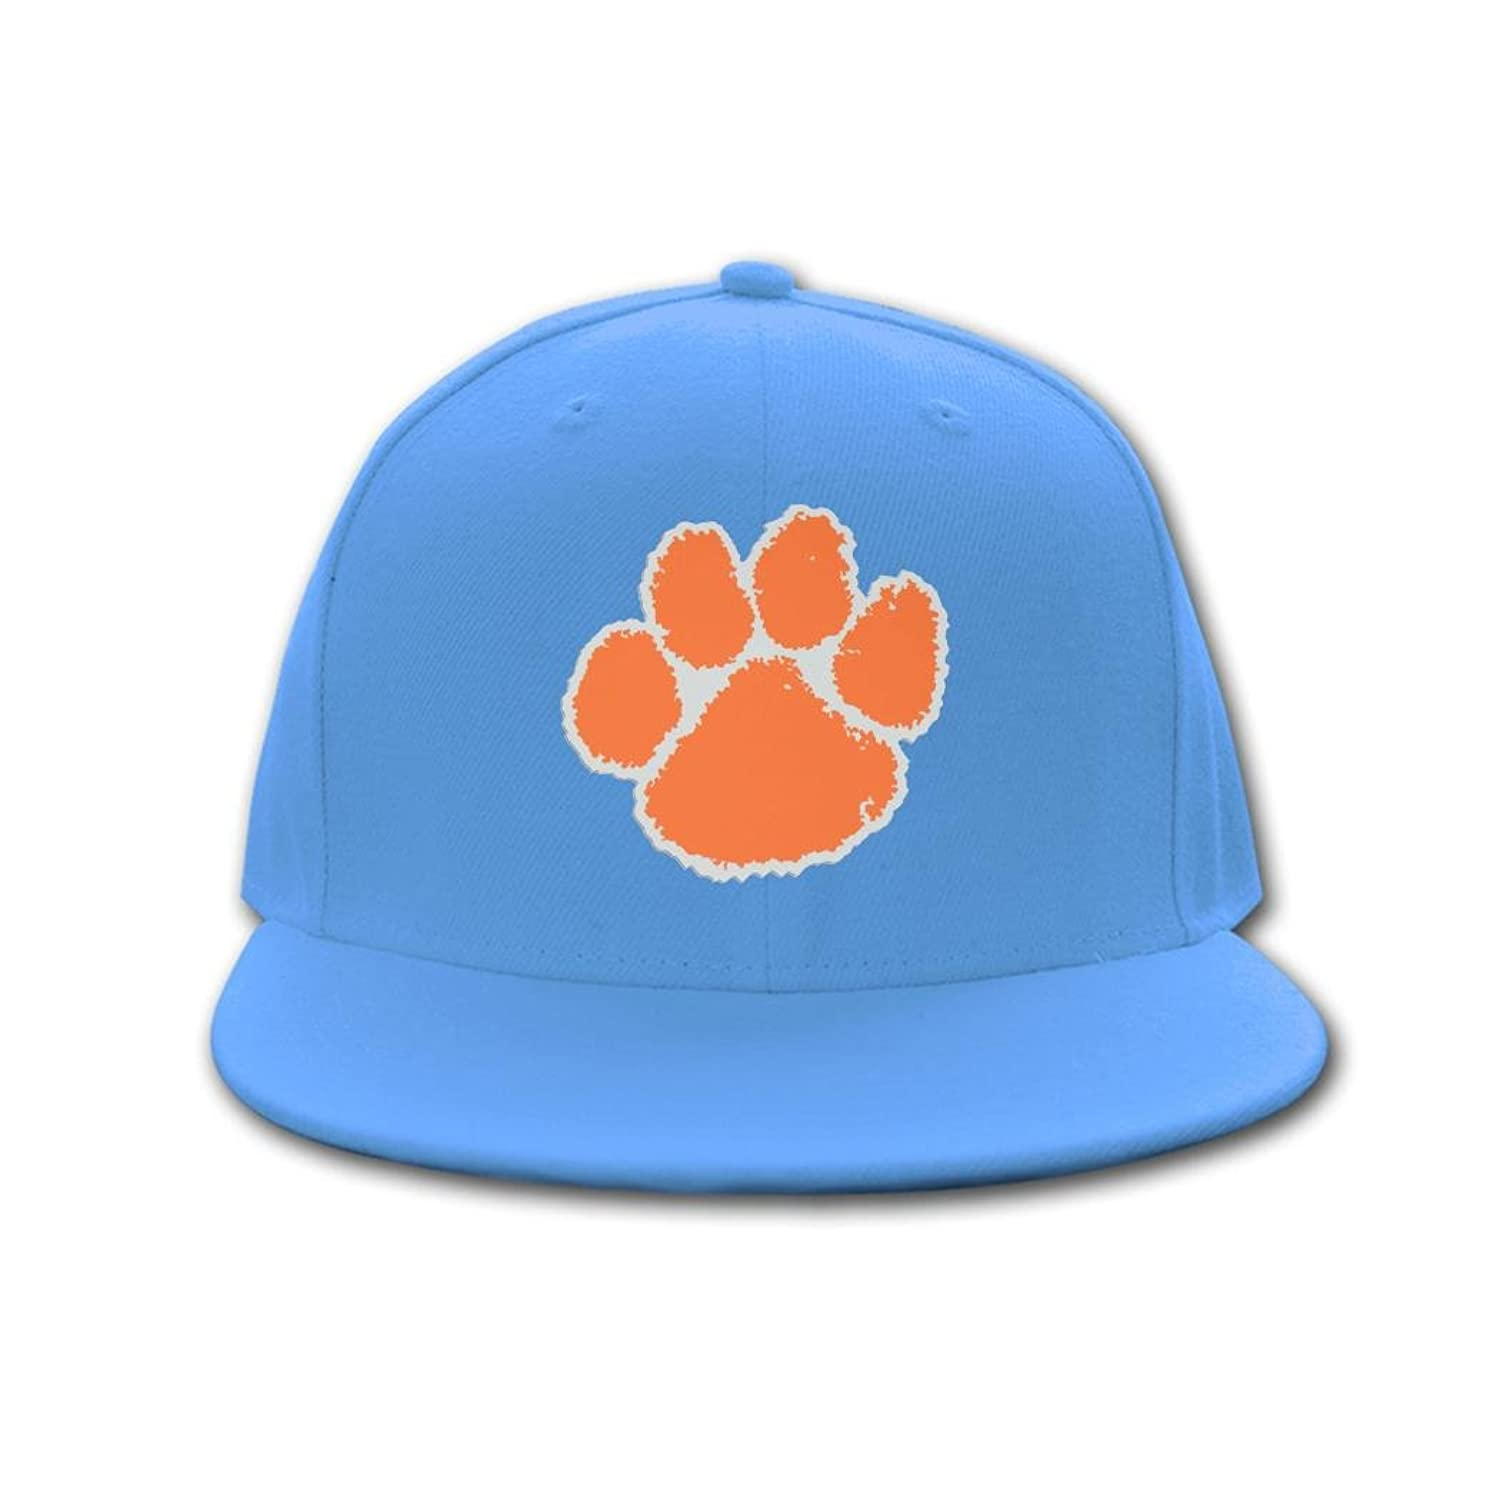 Popular Sun Hat Clemson Tigers Logo 2016 NCAA 100% cotton Hip-hop cap for mens womens